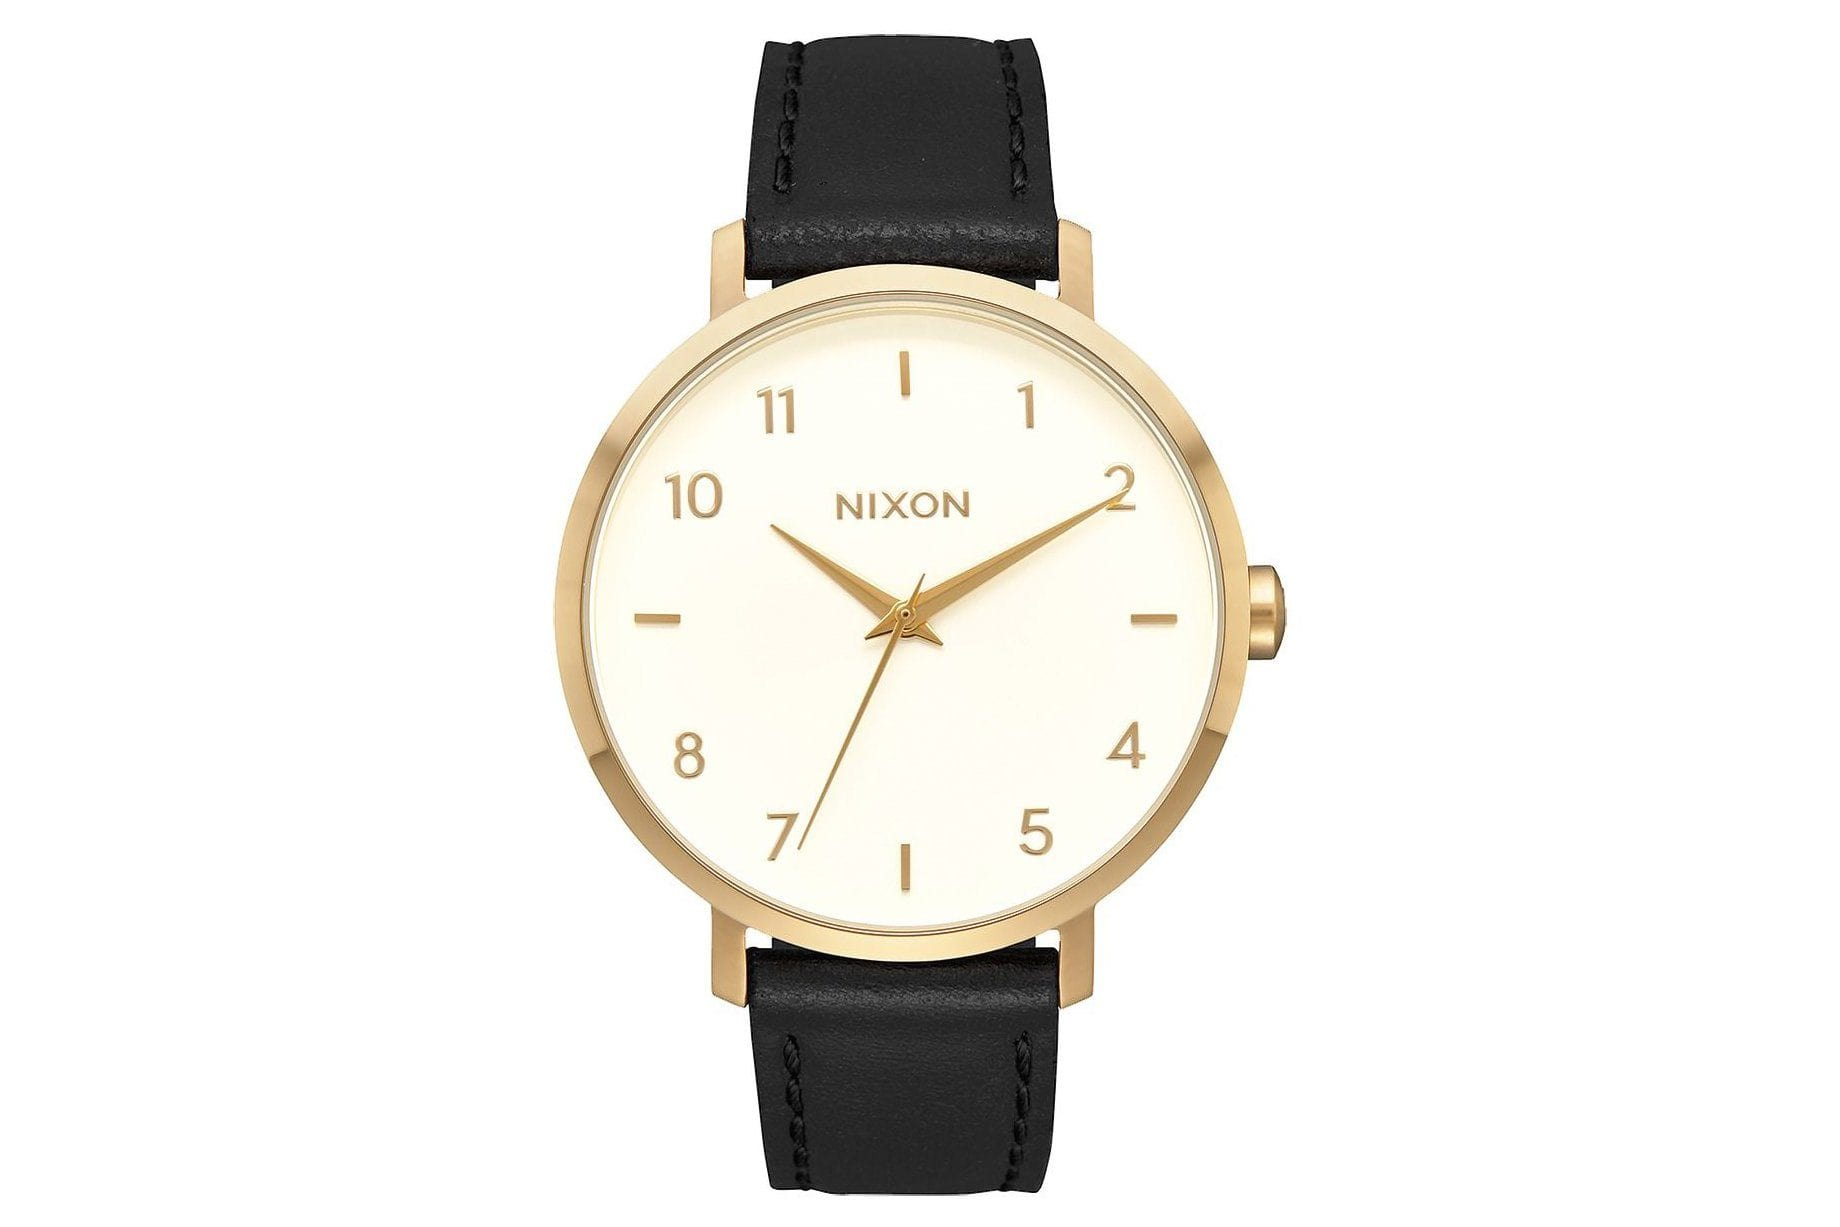 ARROW LEATHER WATCHES NIXON